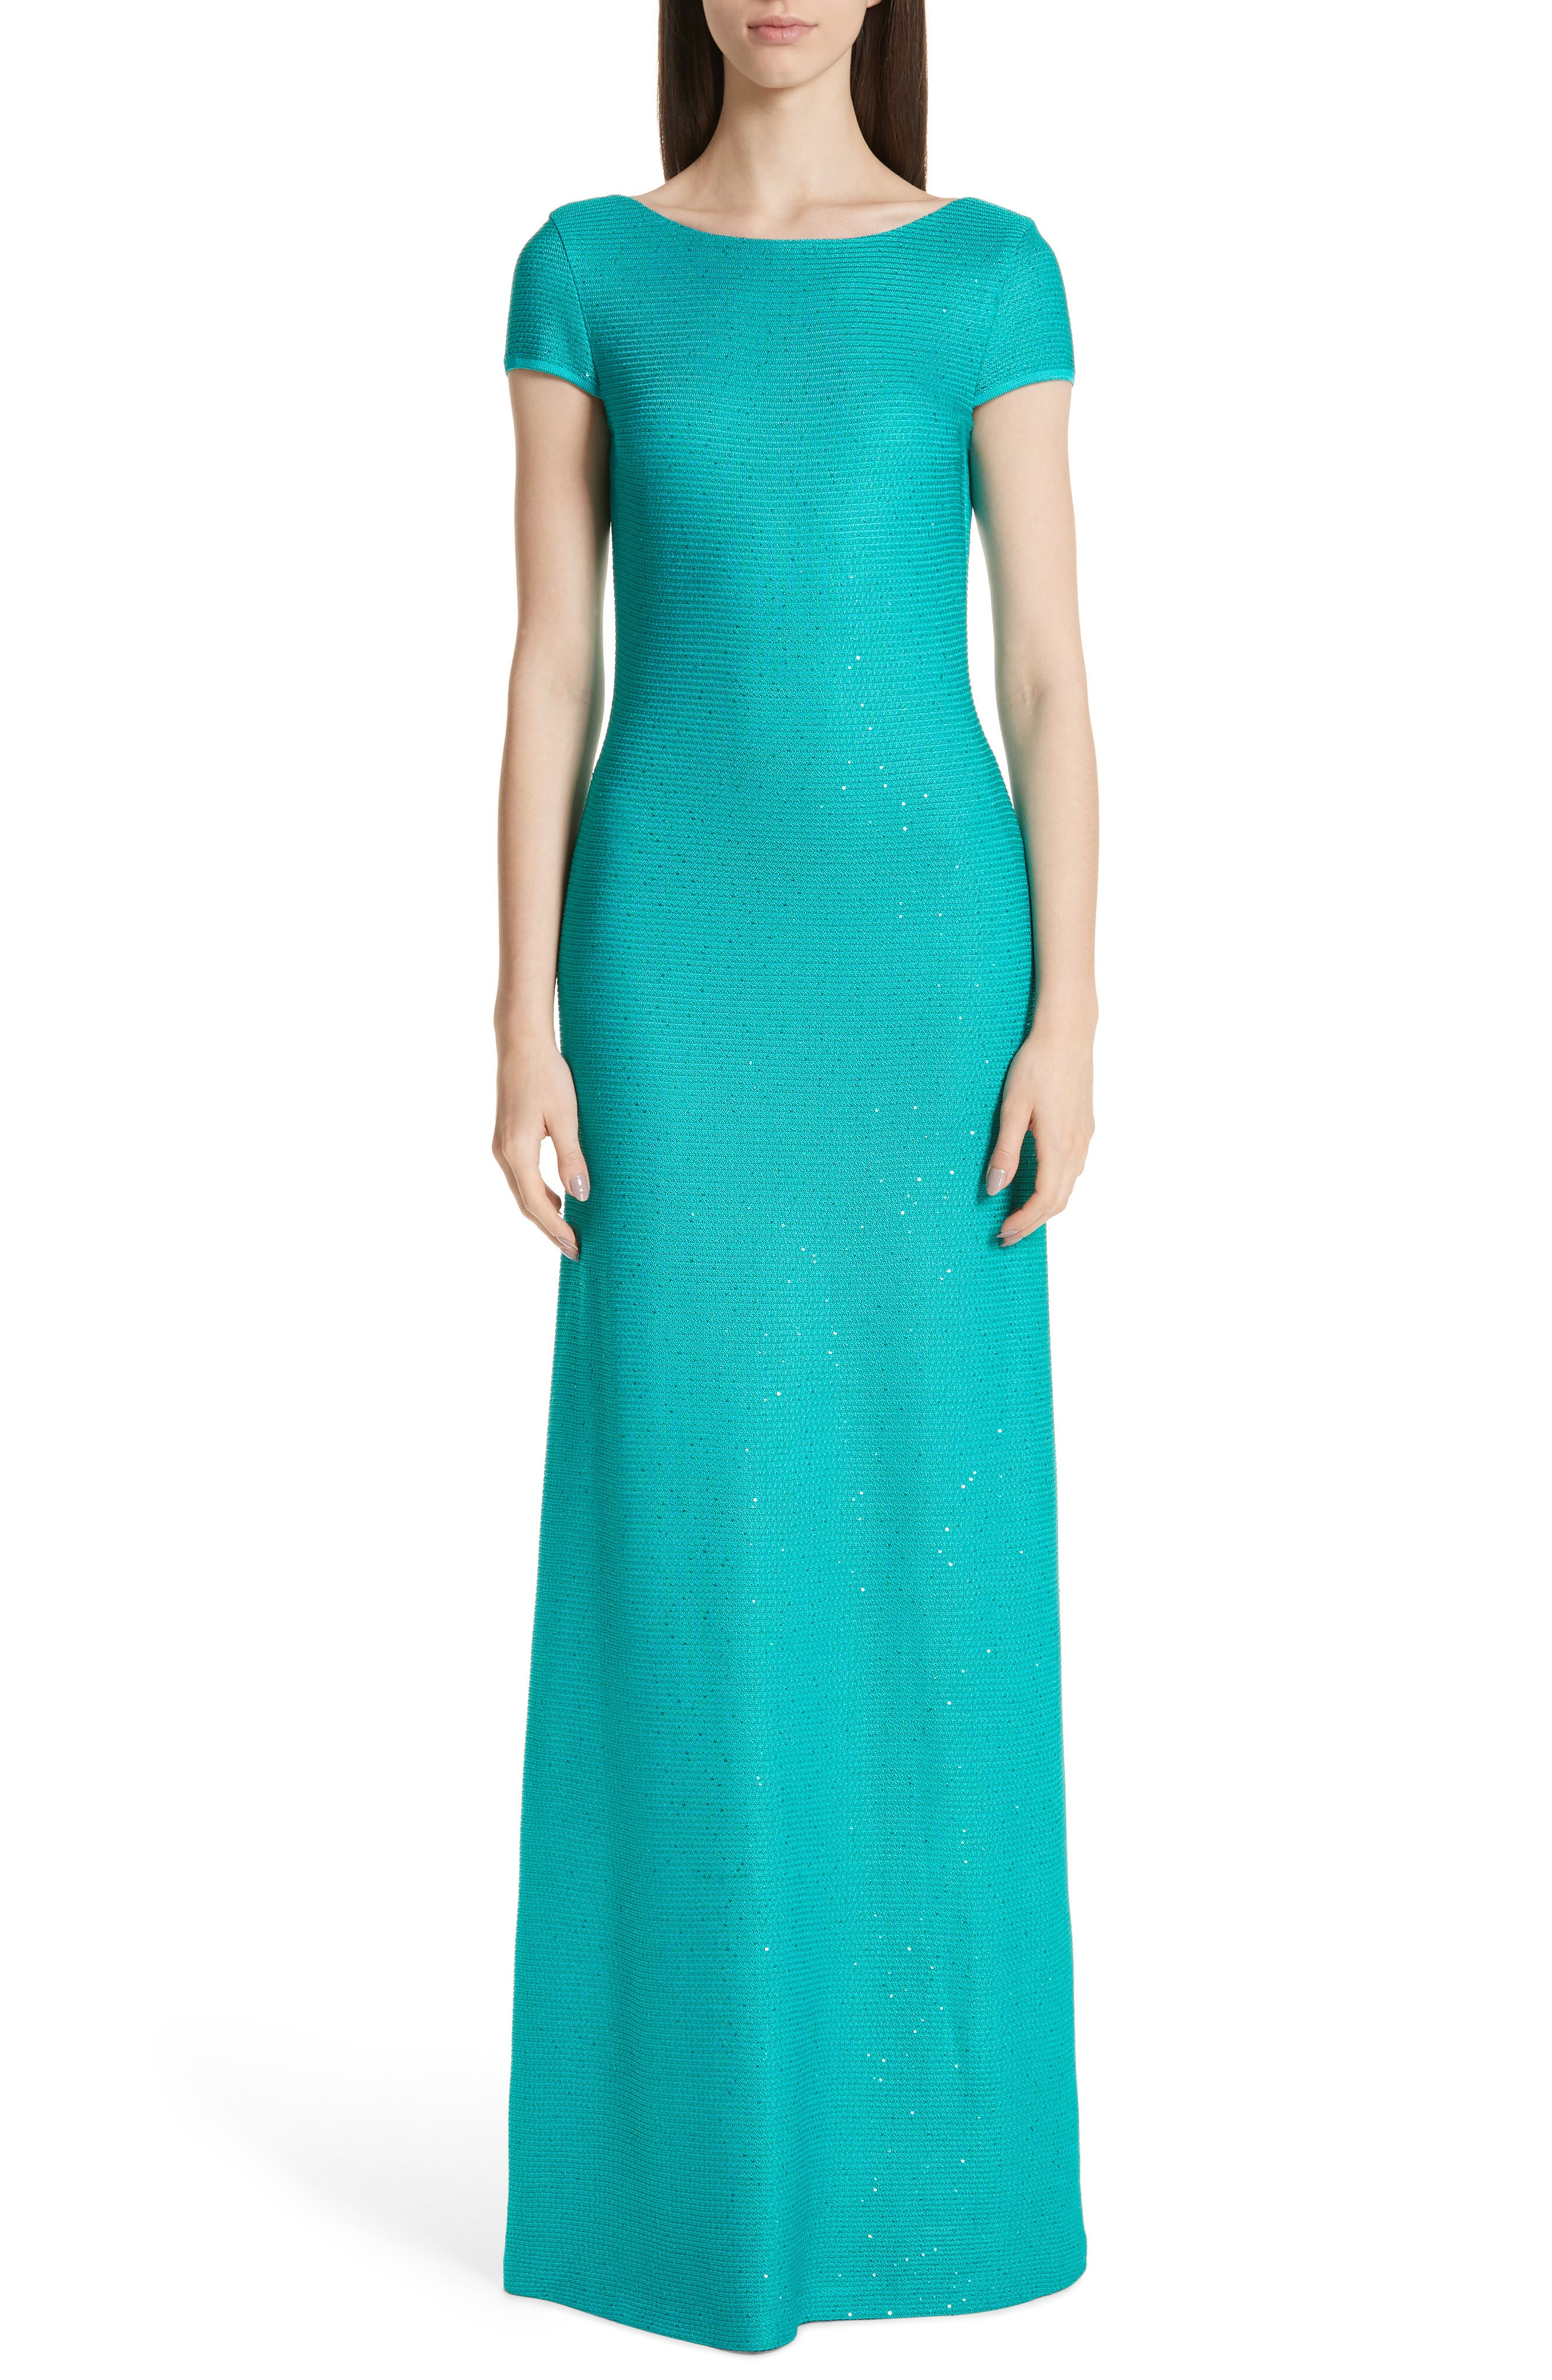 St. John Collection Links Sequin Knit Trumpet Gown, Green